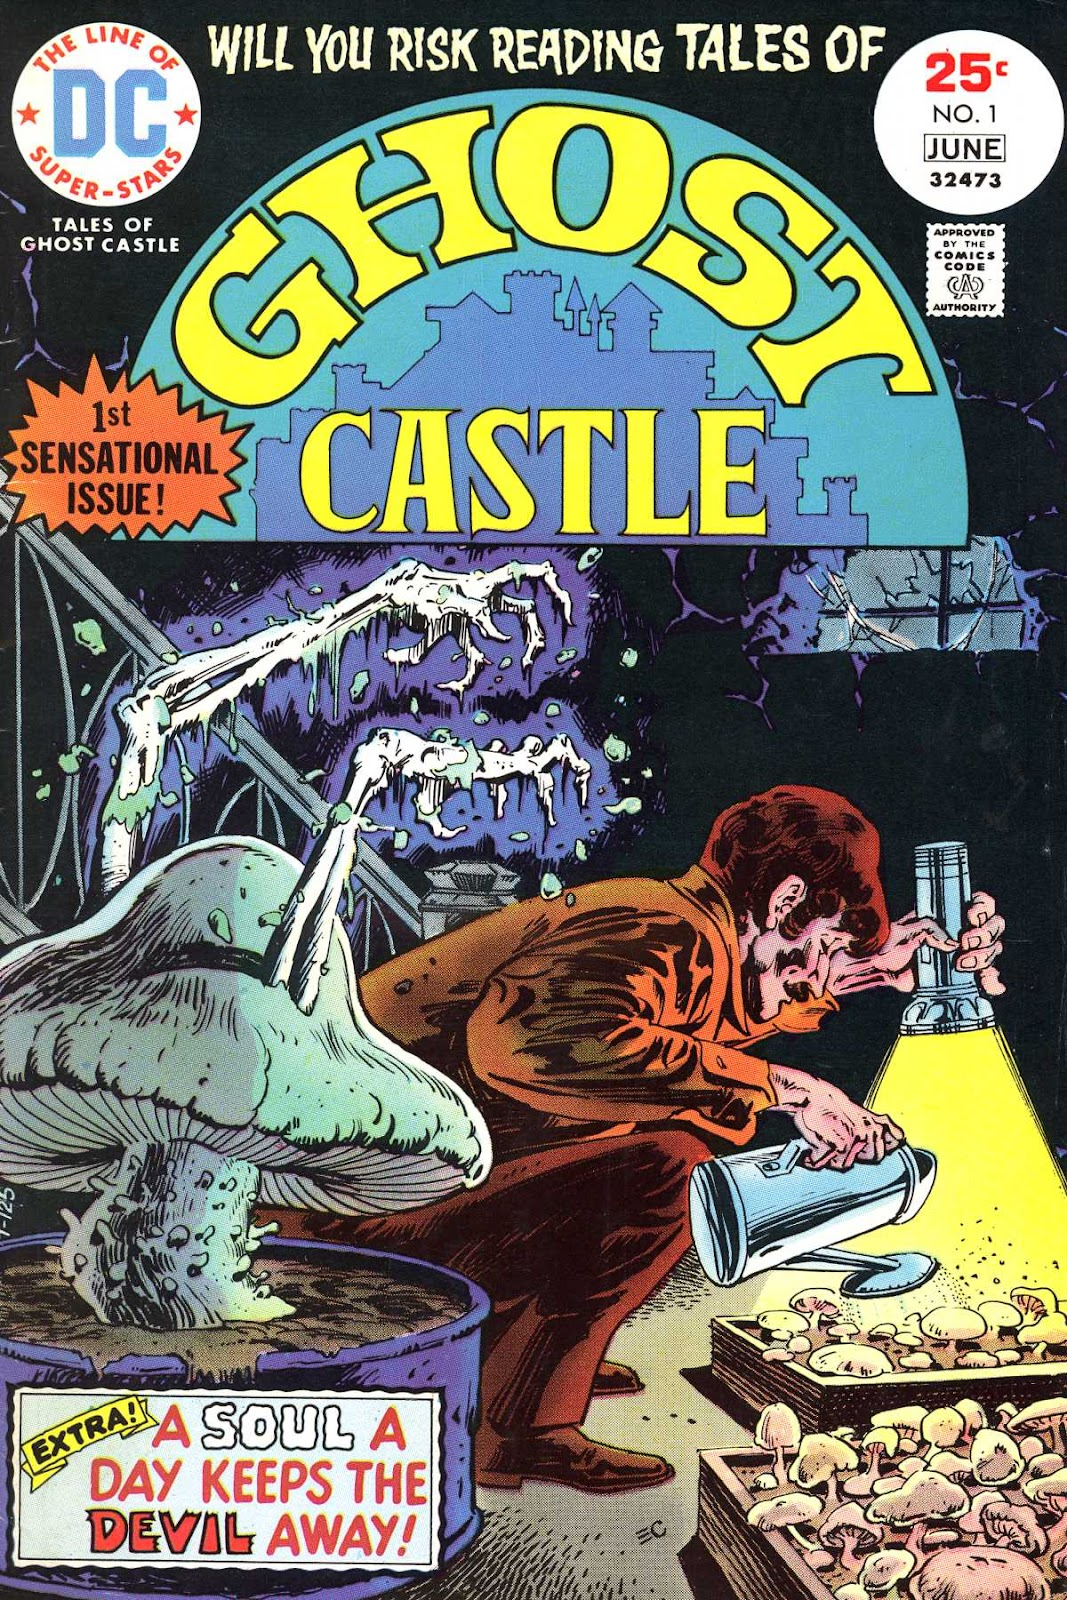 Read online Tales of Ghost Castle comic -  Issue #1 - 1